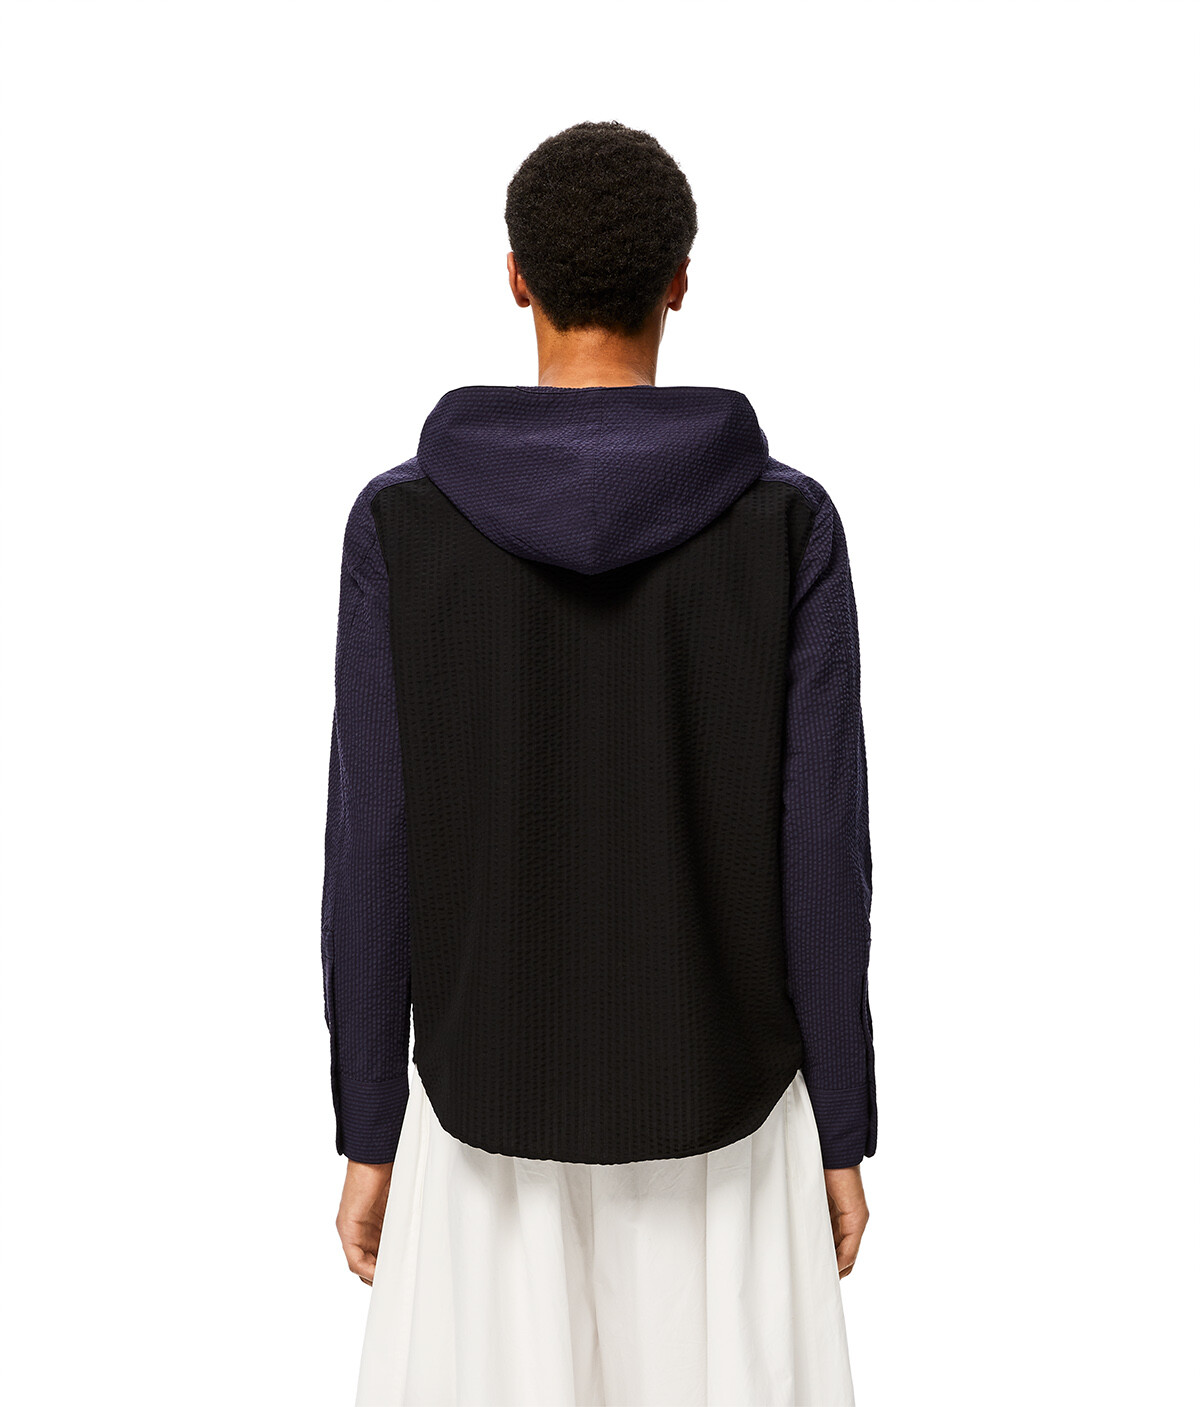 LOEWE Hooded Shirt Navy Blue/Black front